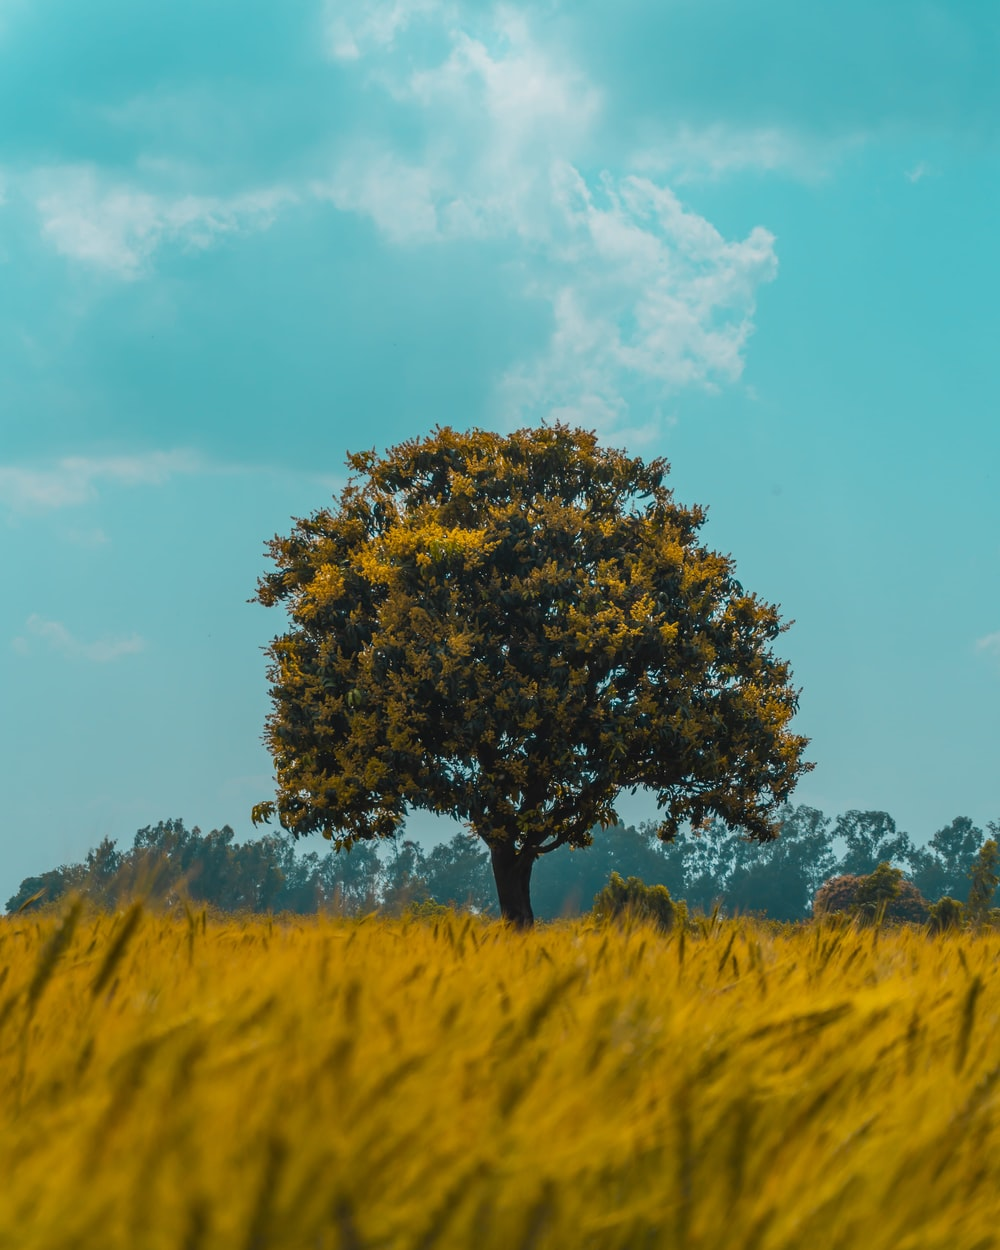 green tree on yellow grass field under blue sky during daytime